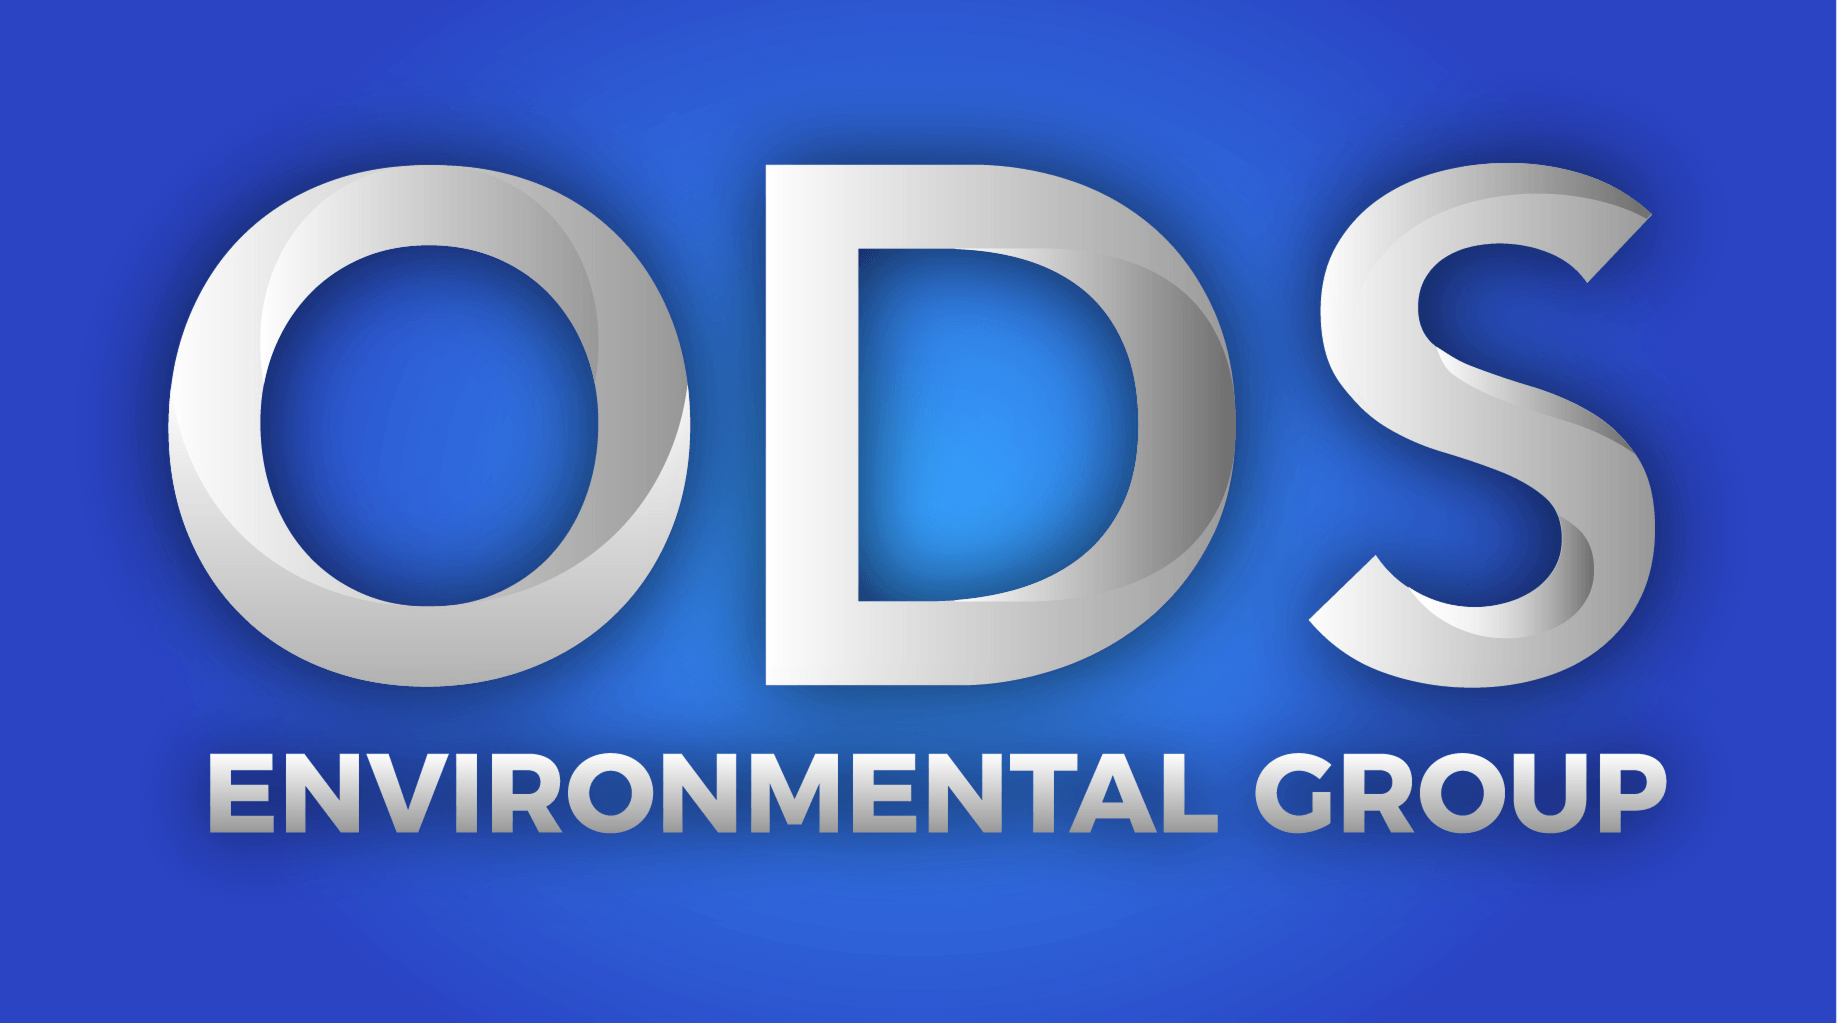 ODS Environmental Group